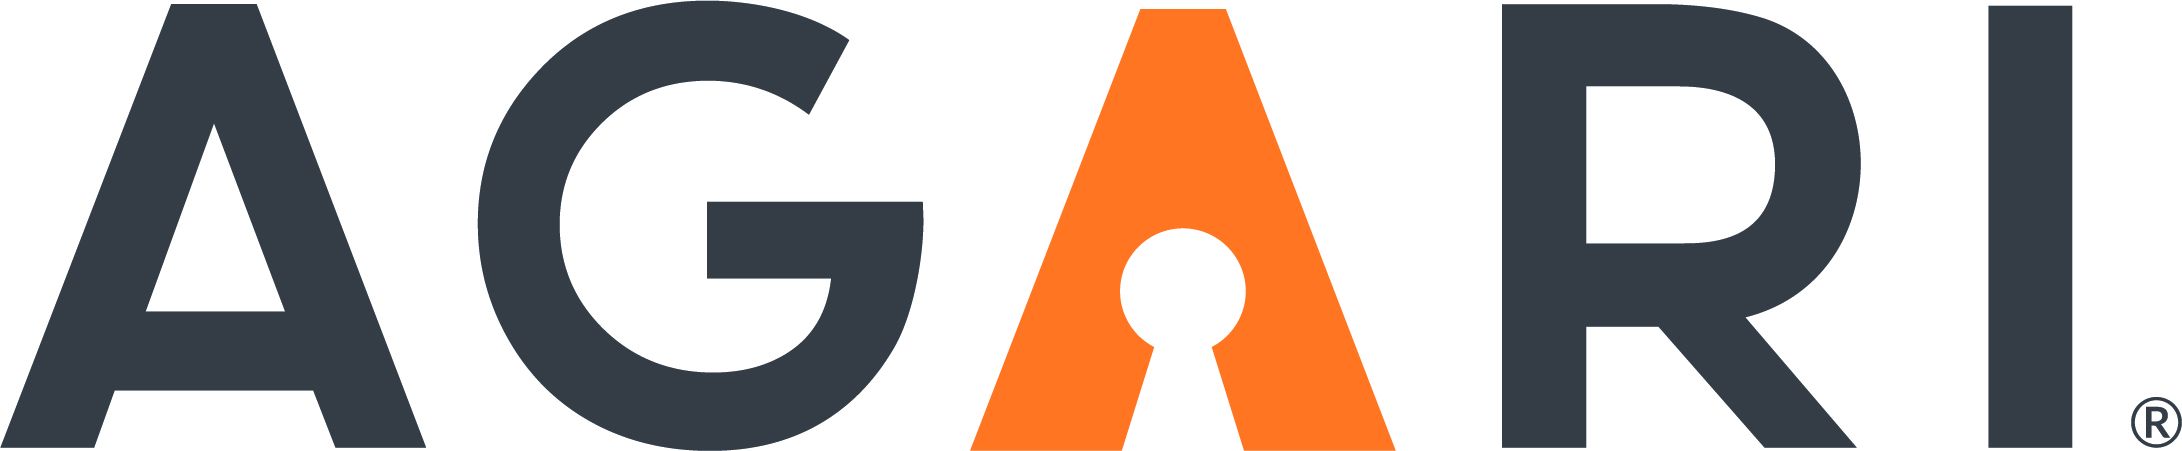 AGARI_logo_GREY-ORANGE.jpg